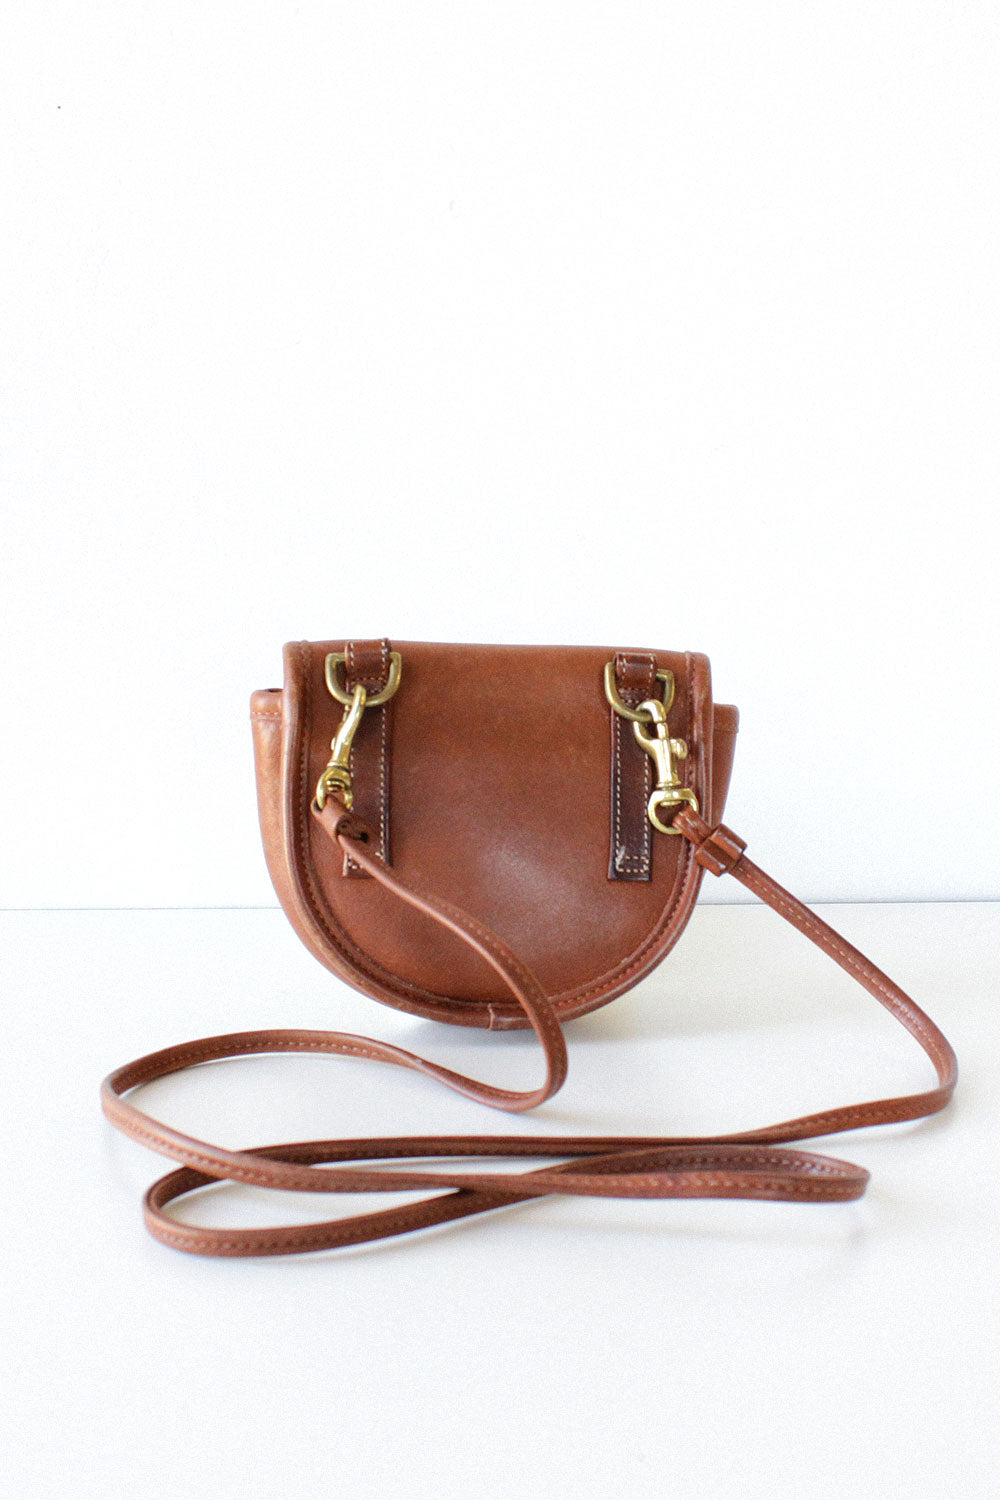 Coach Chestnut Mini Belt Bag